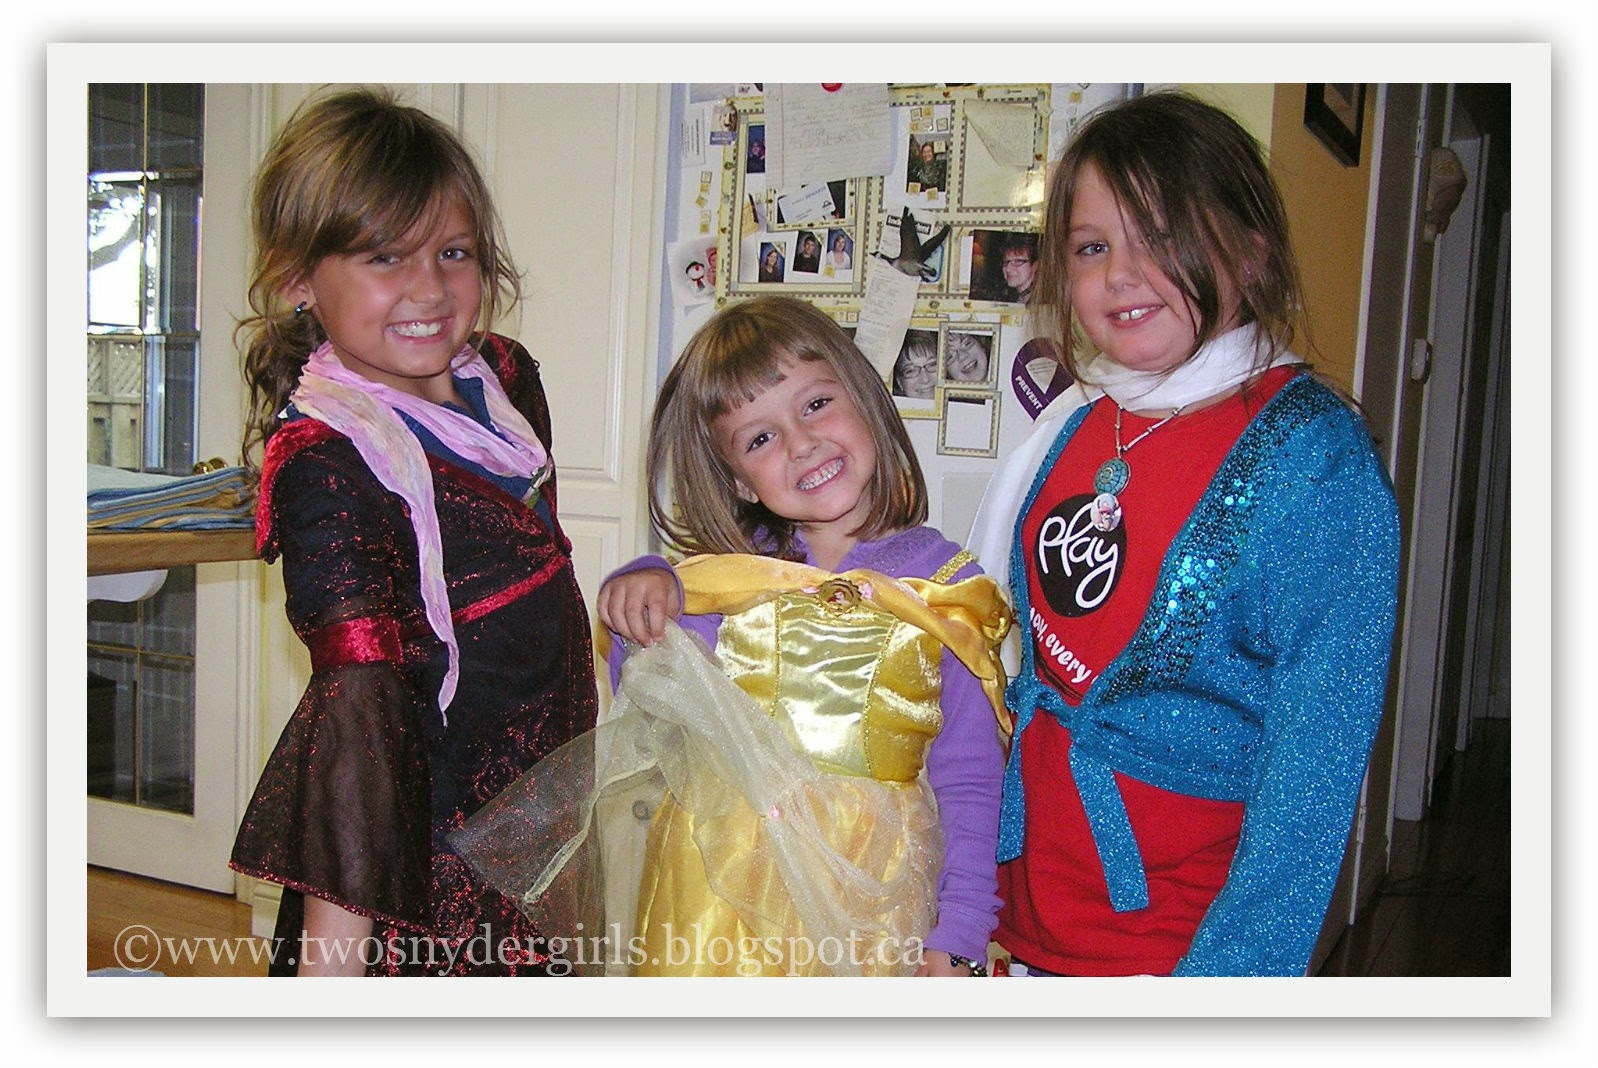 Three children playing dress up